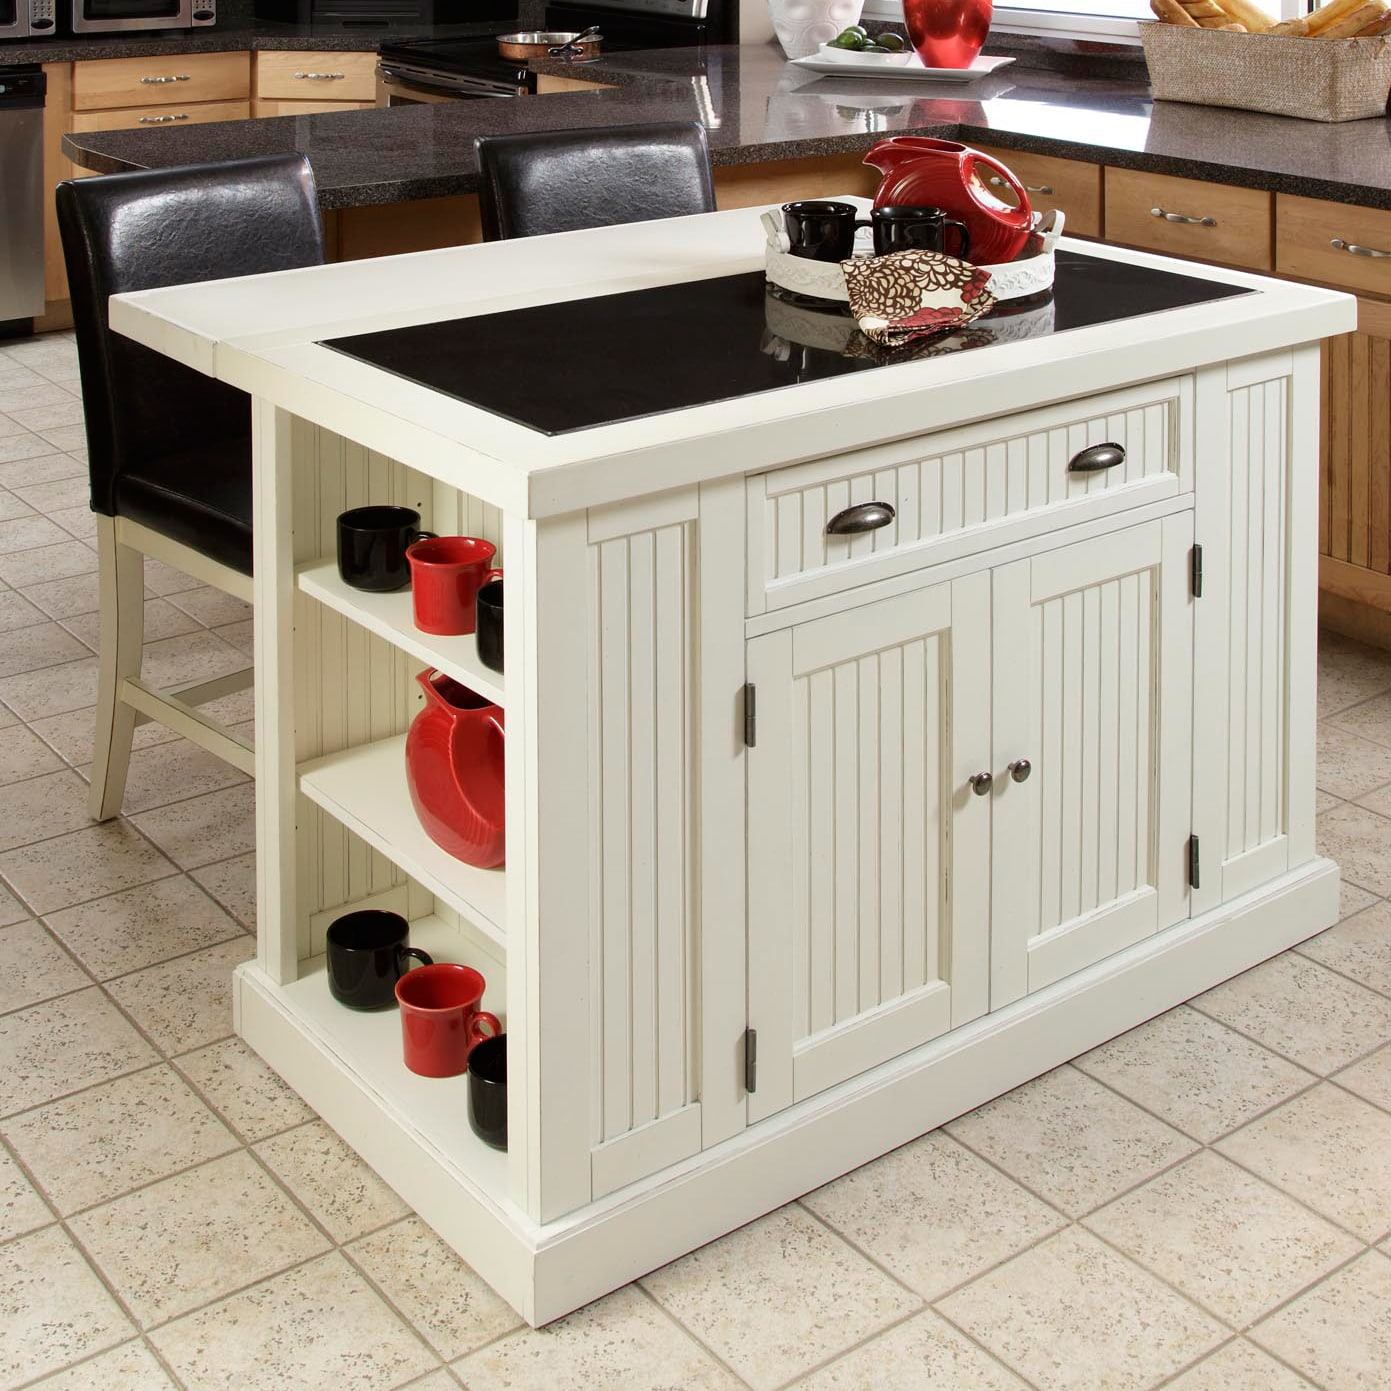 Distressed White Board Kitchen Island with Drop-leaf Breakfast Bar